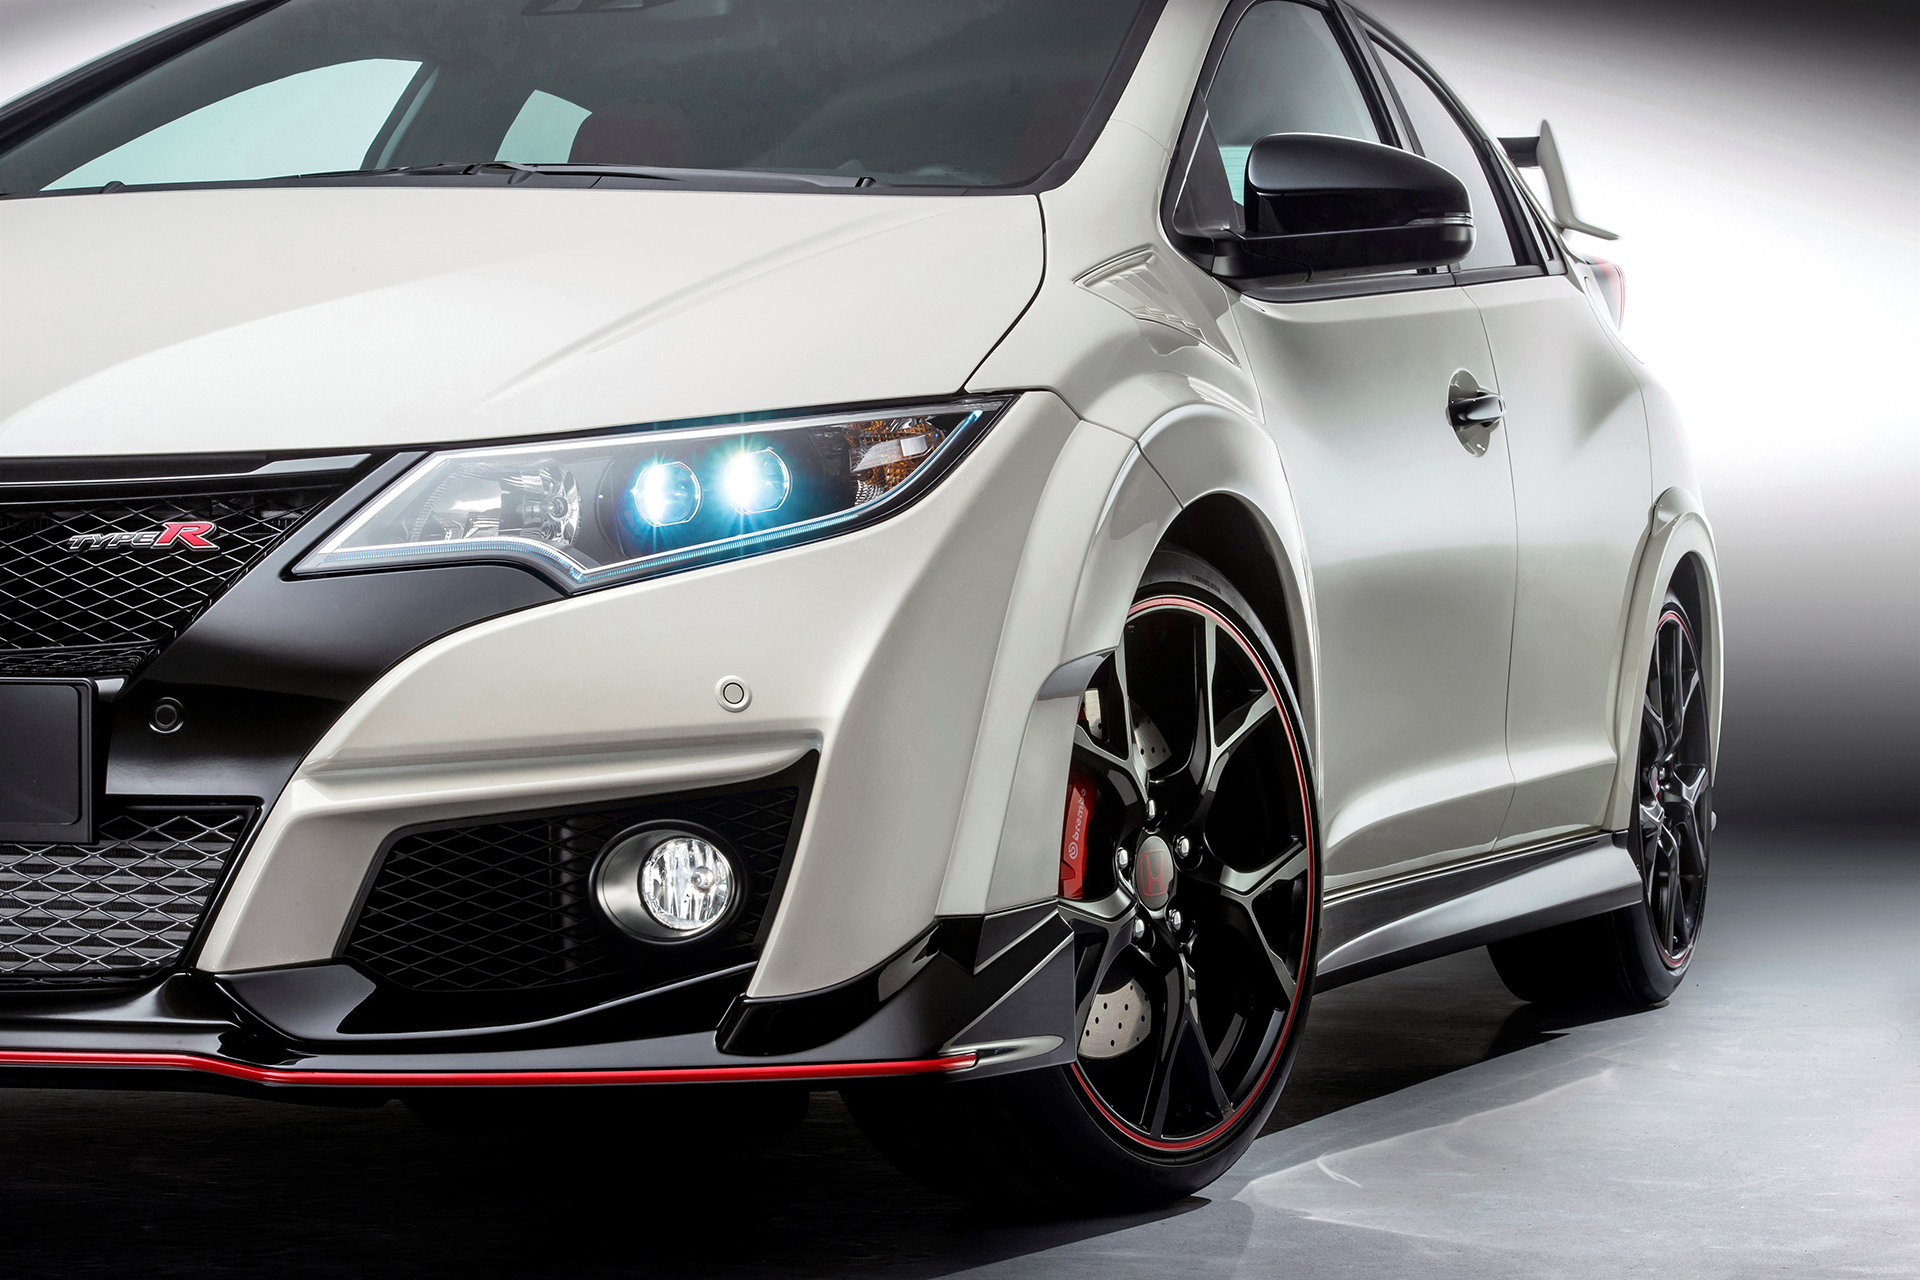 Honda Civic Type R - 2015 - front light / optique avant